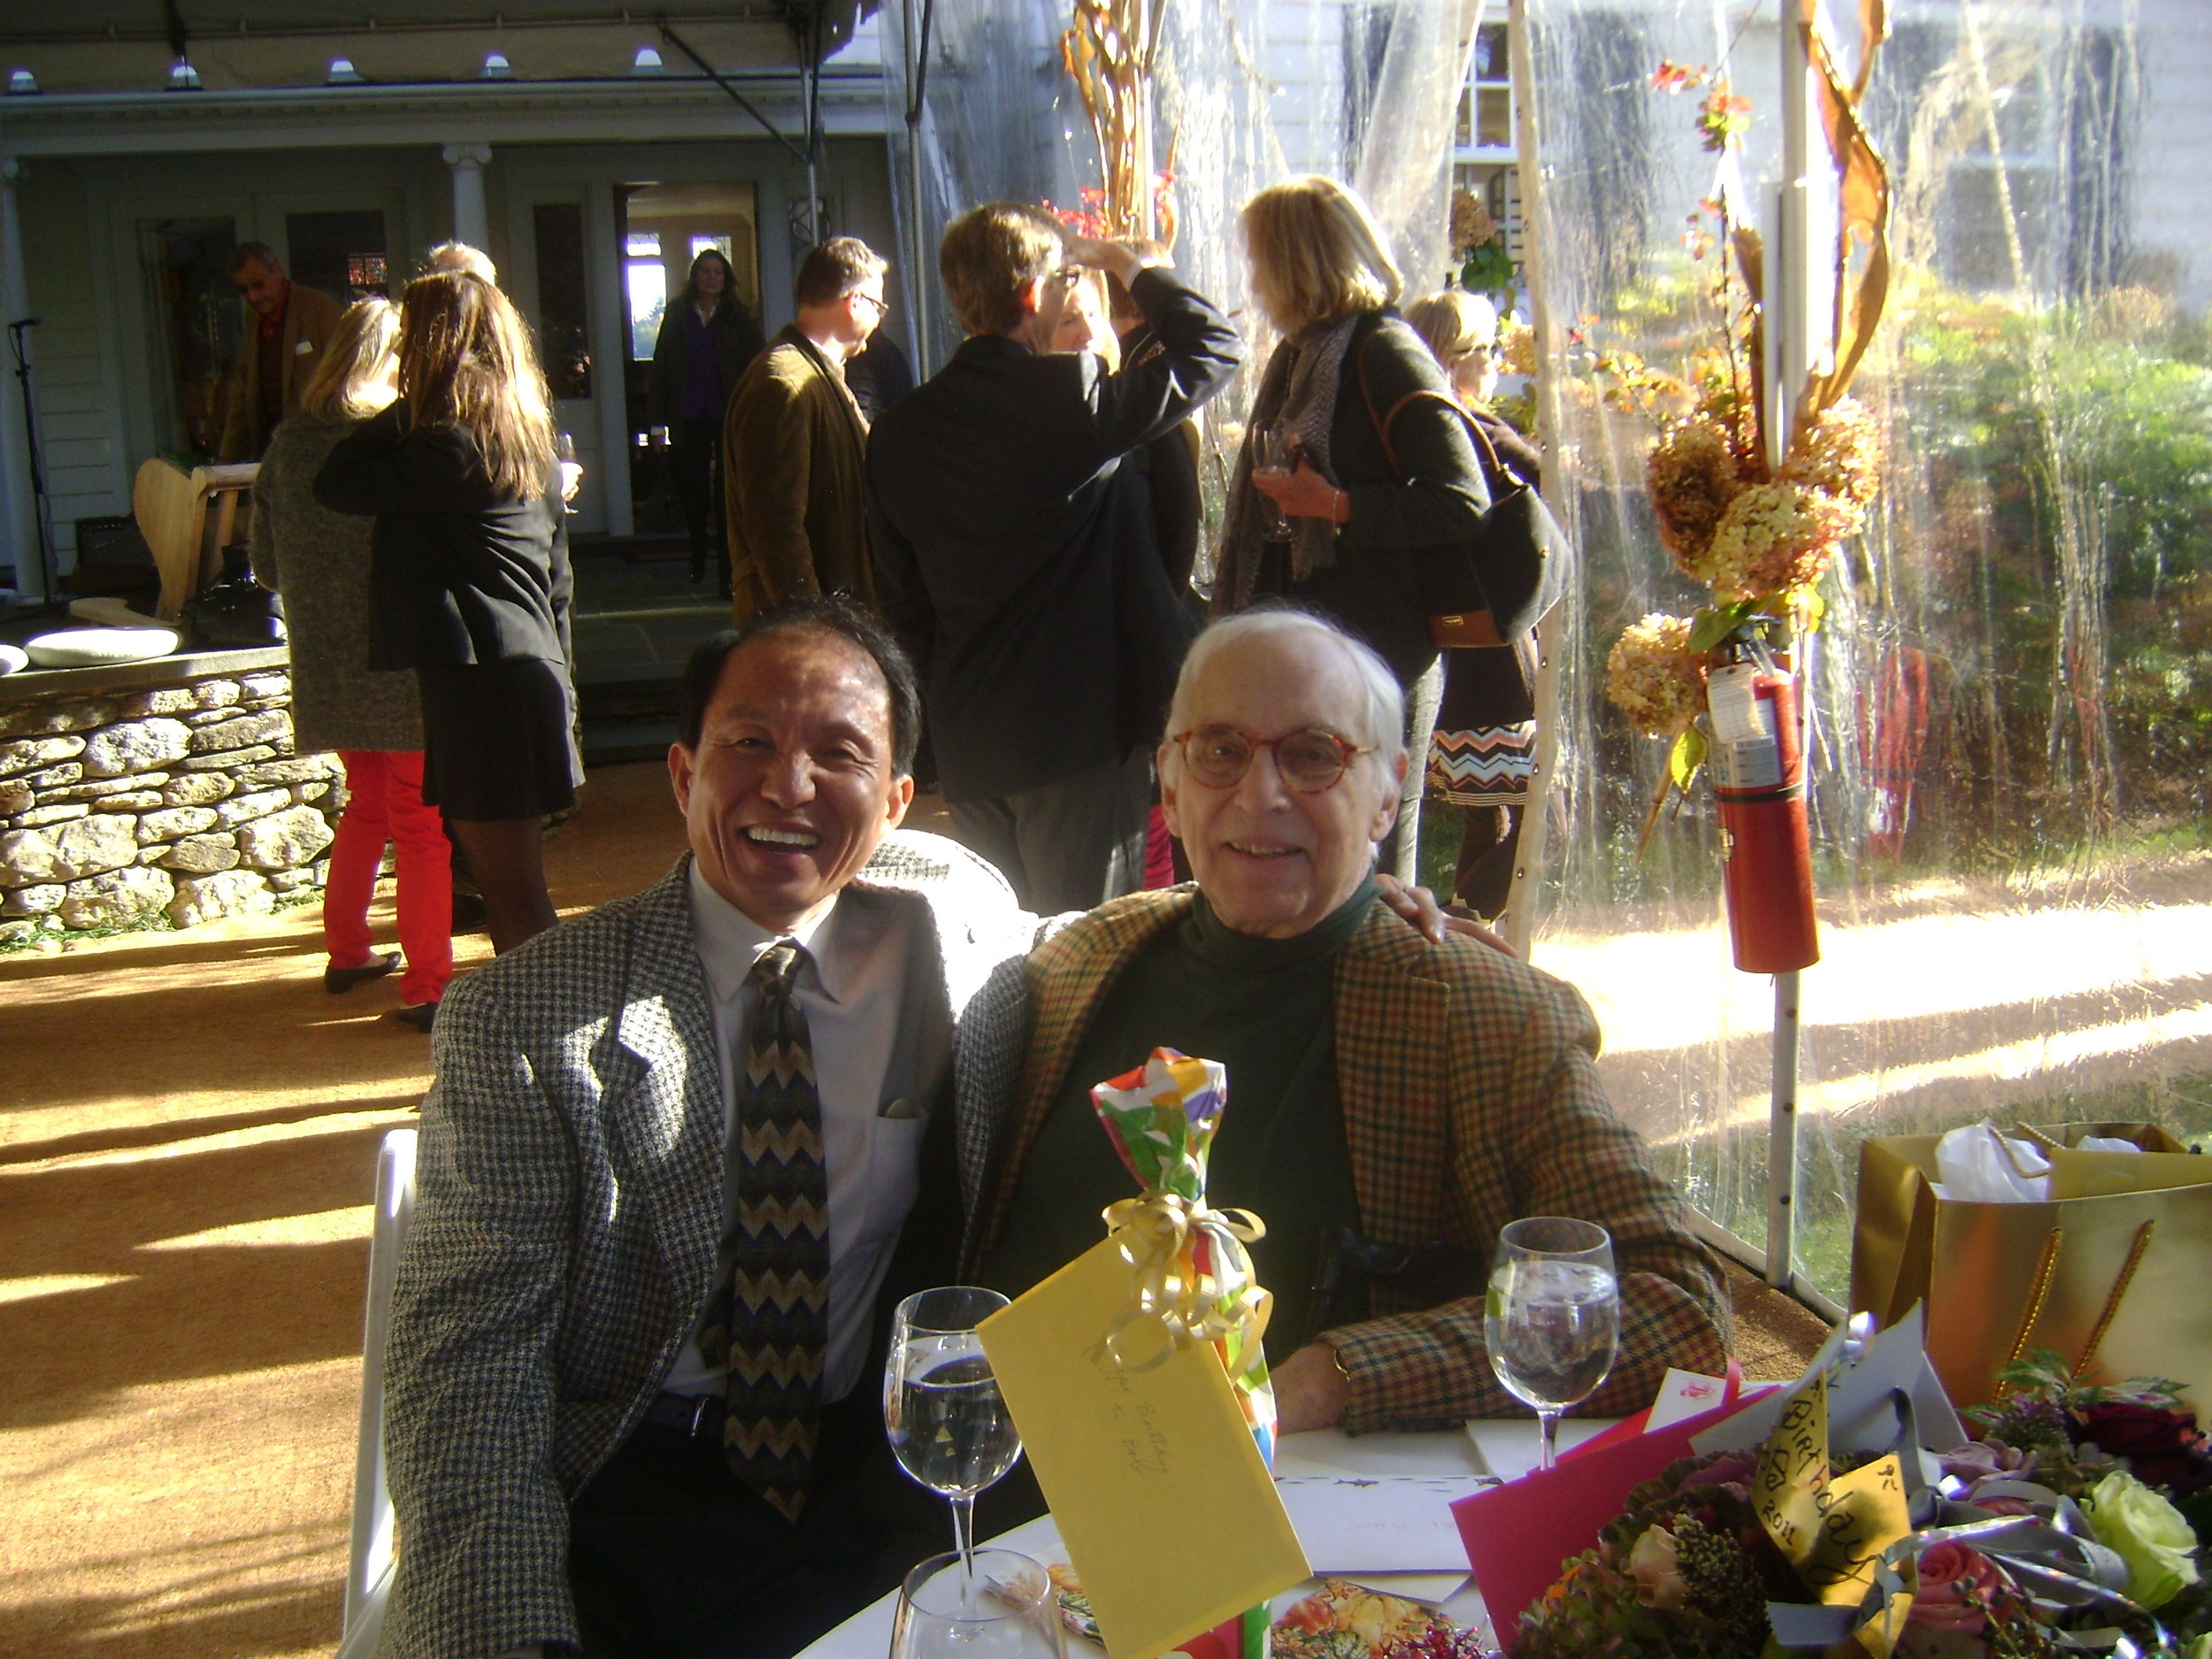 Bunseng (left) and Robert P. DeVecchi (right) at DeVecchi's Birthday party in 2011.